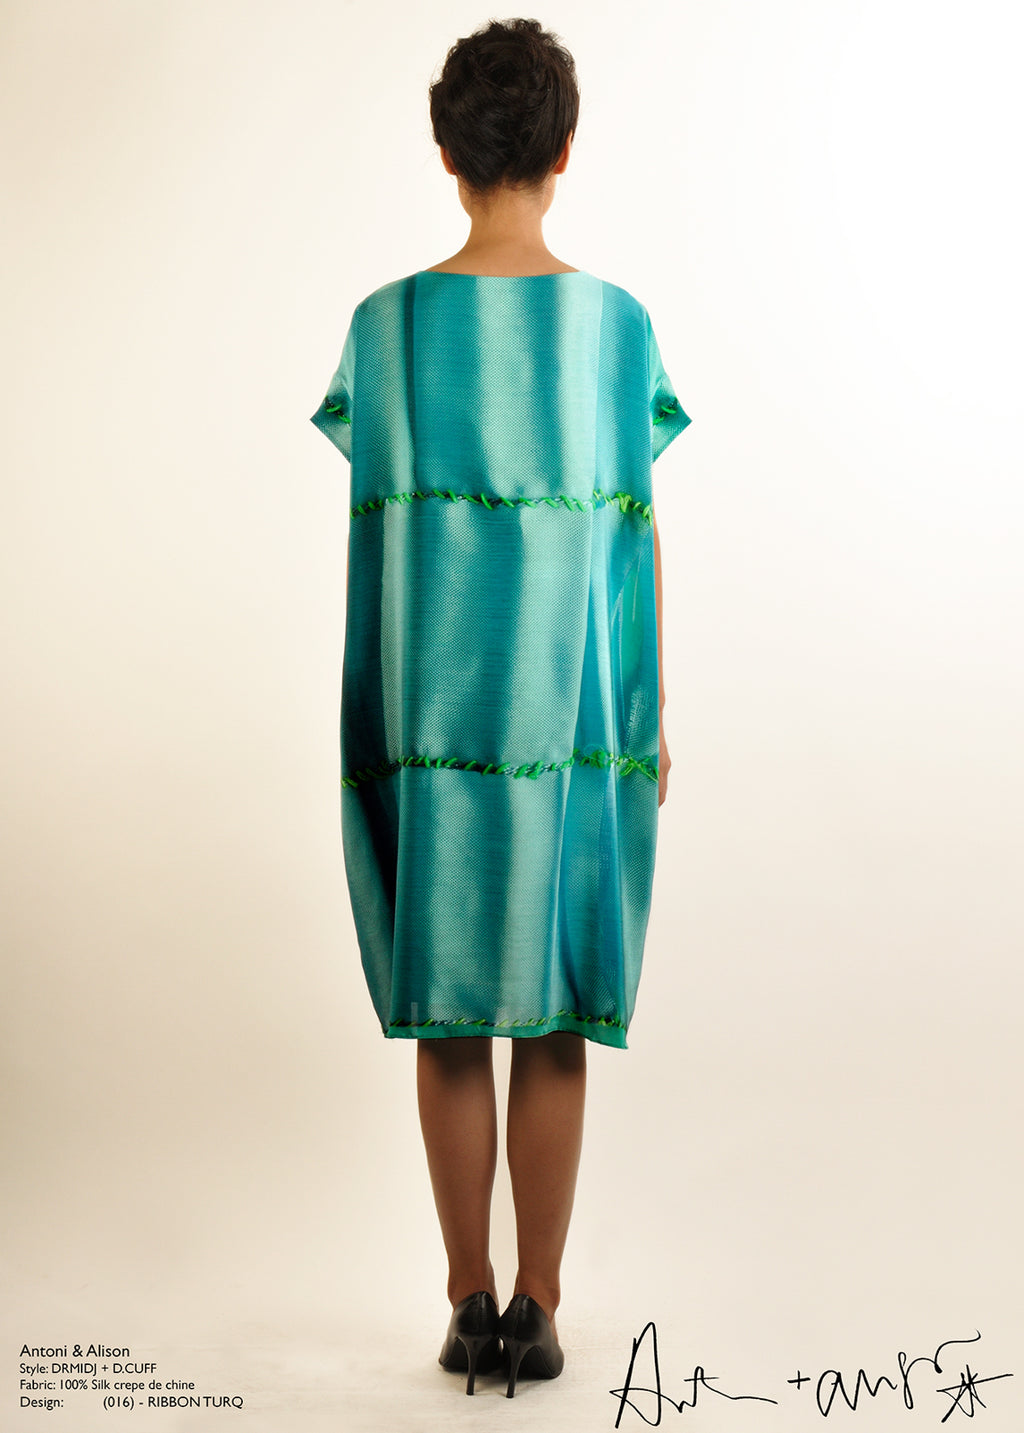 Ribbon Turk Silk Dress